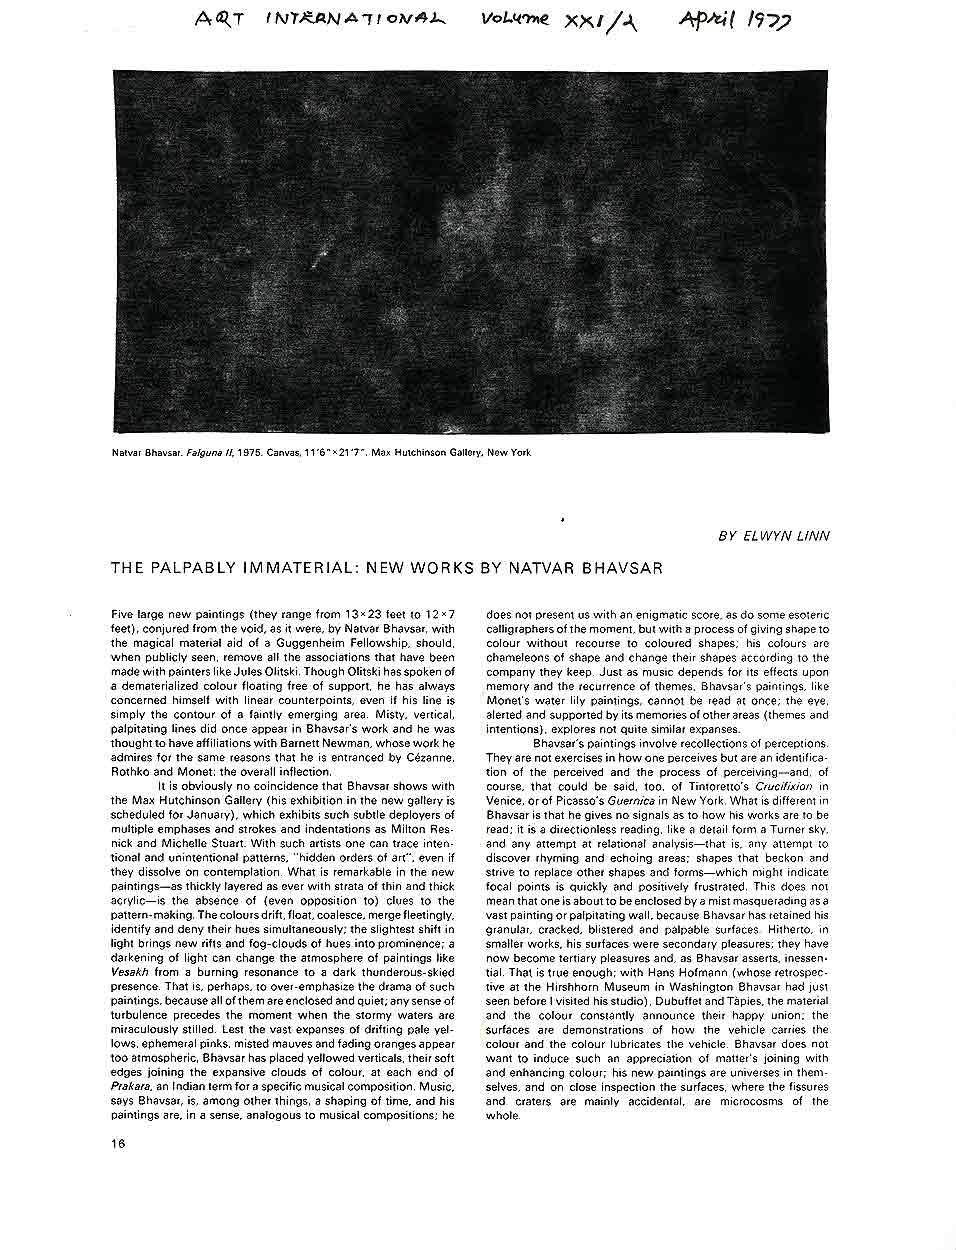 The Palpably Immaterial: New Works by Natvar Bhavsar, article, pg 1